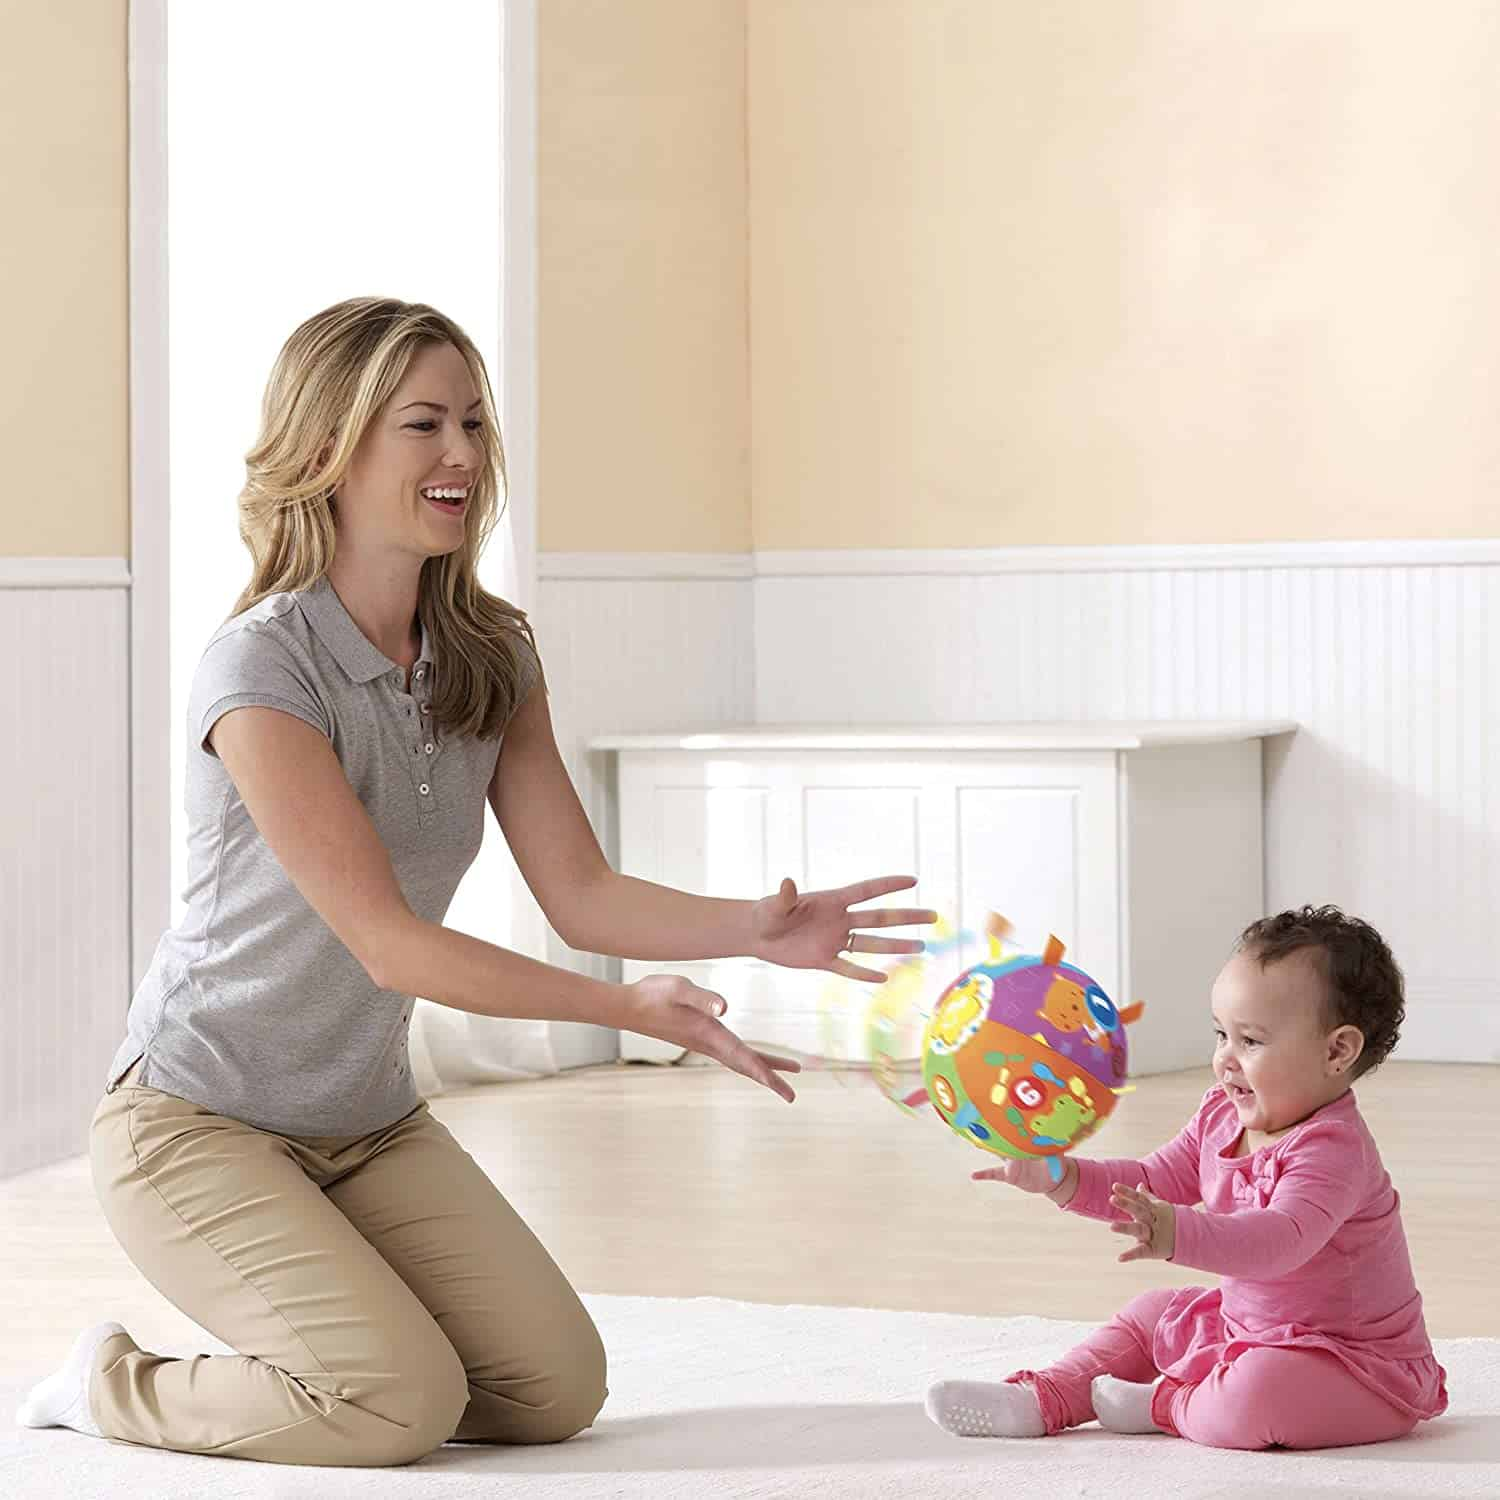 Cutest tactile baby toys: VTech Cuddle & Leather ball